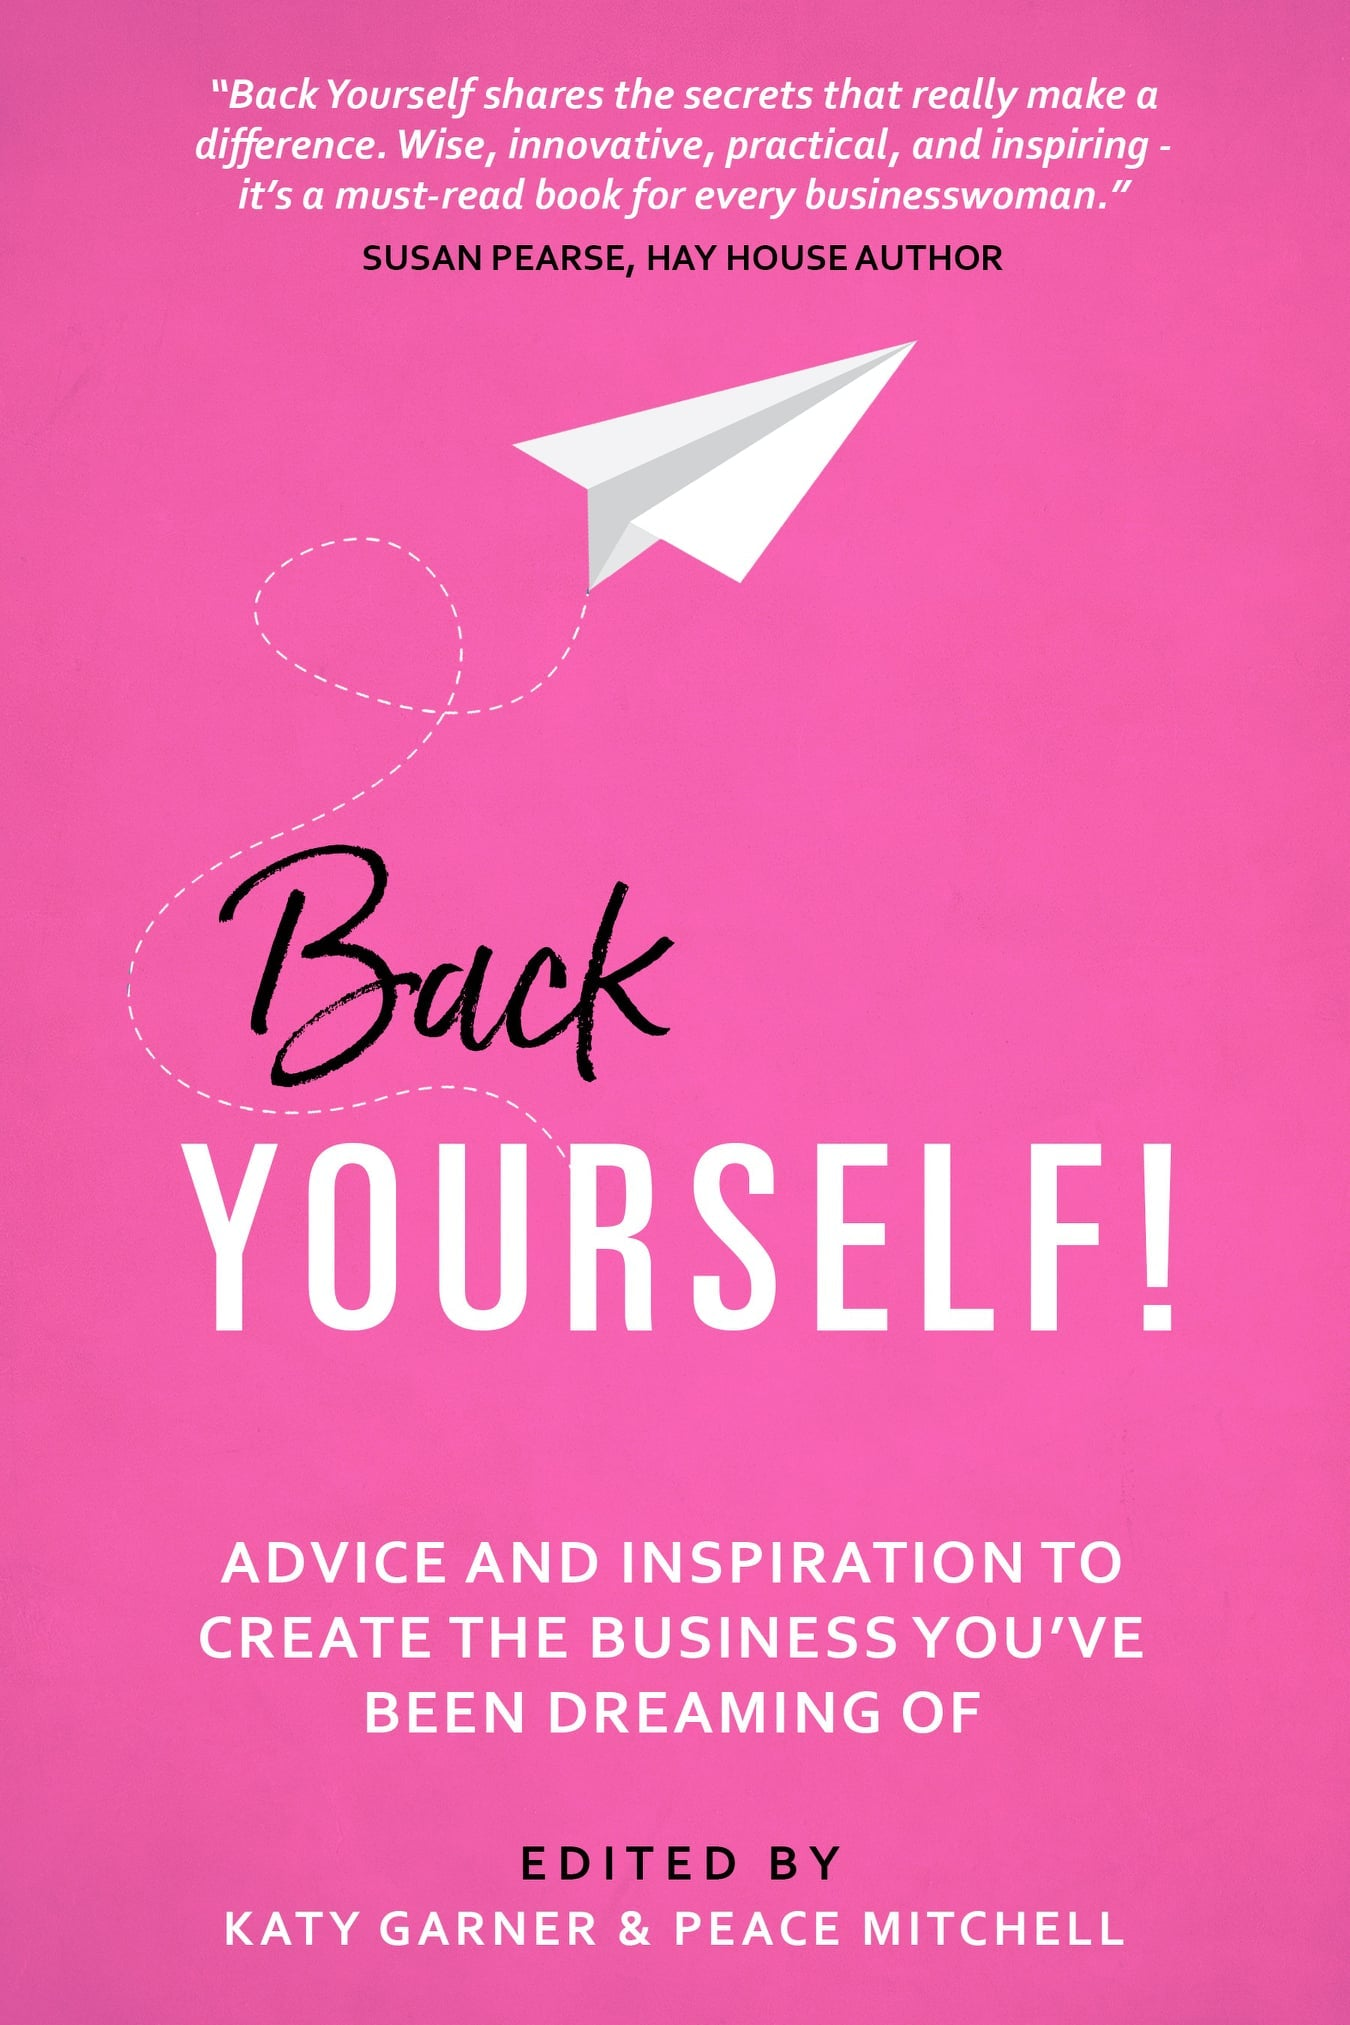 Back Yourself Book - PREORDER